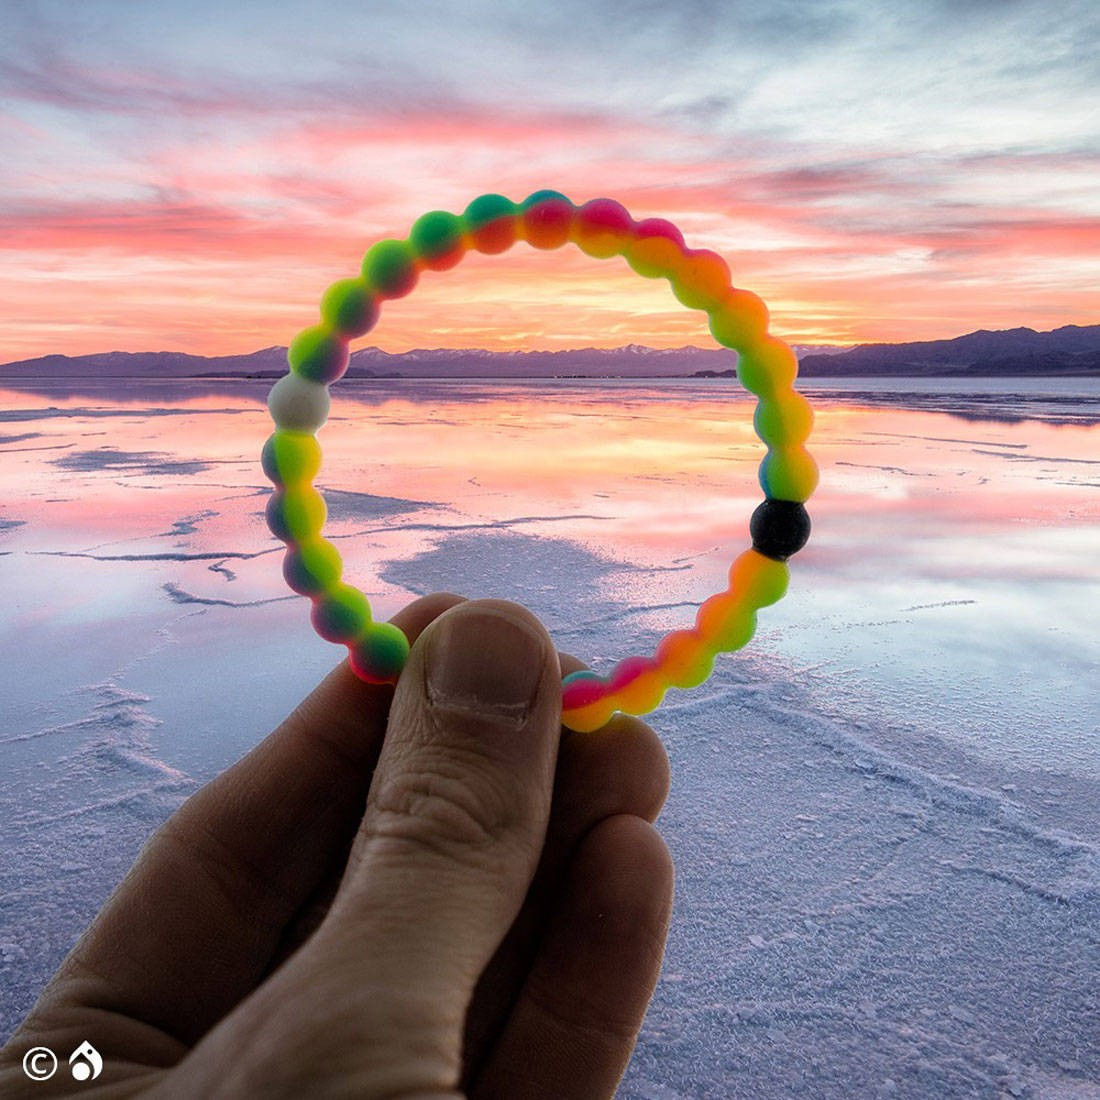 Lokai Neon Bracelet Limited Edition Make A Wish Foundation Multi Pink